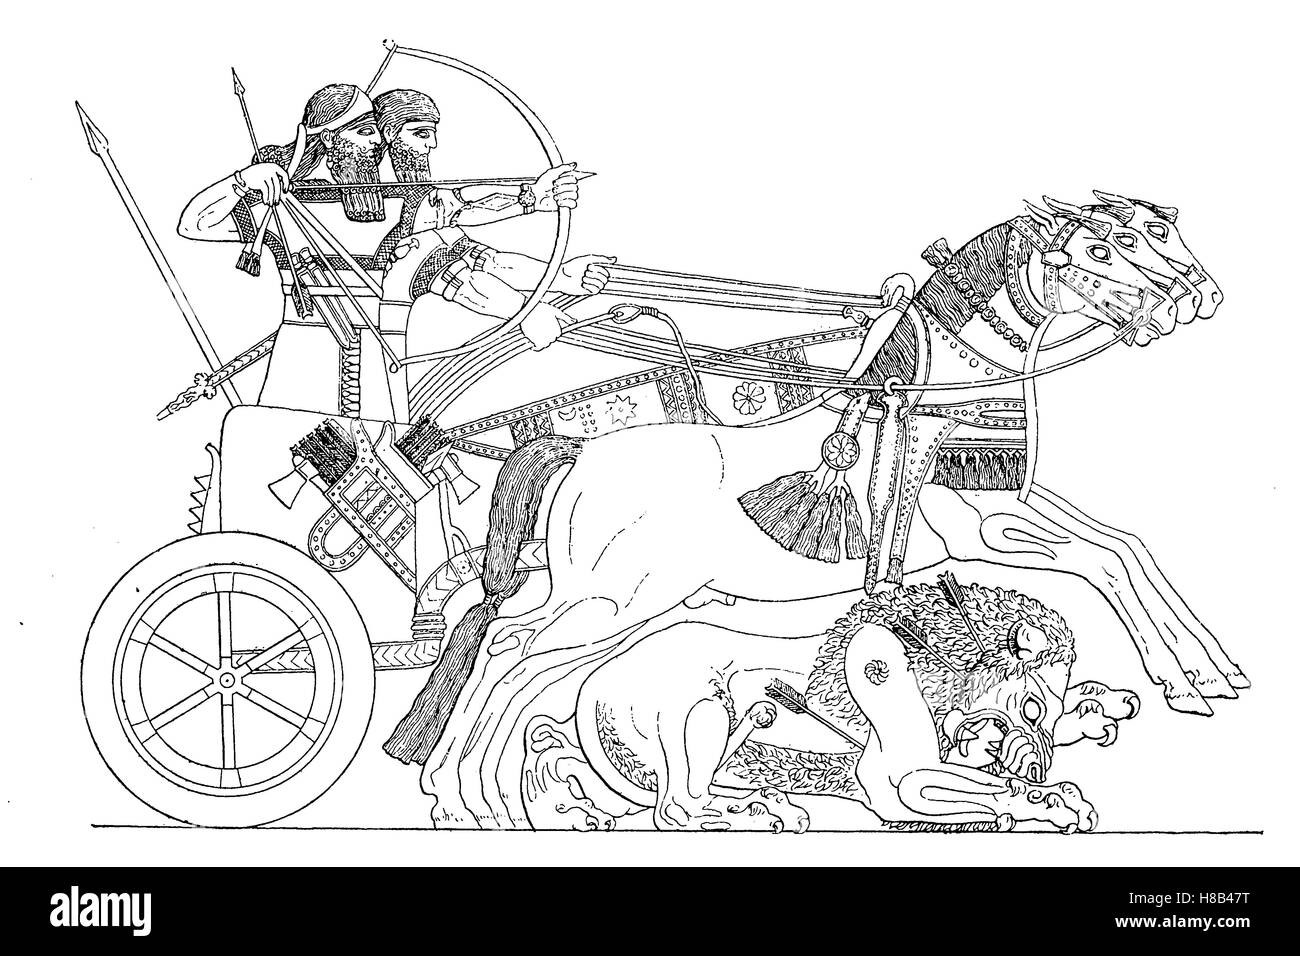 Assyrian lion hunting, wagon and weapons, History of fashion, costume story - Stock Image